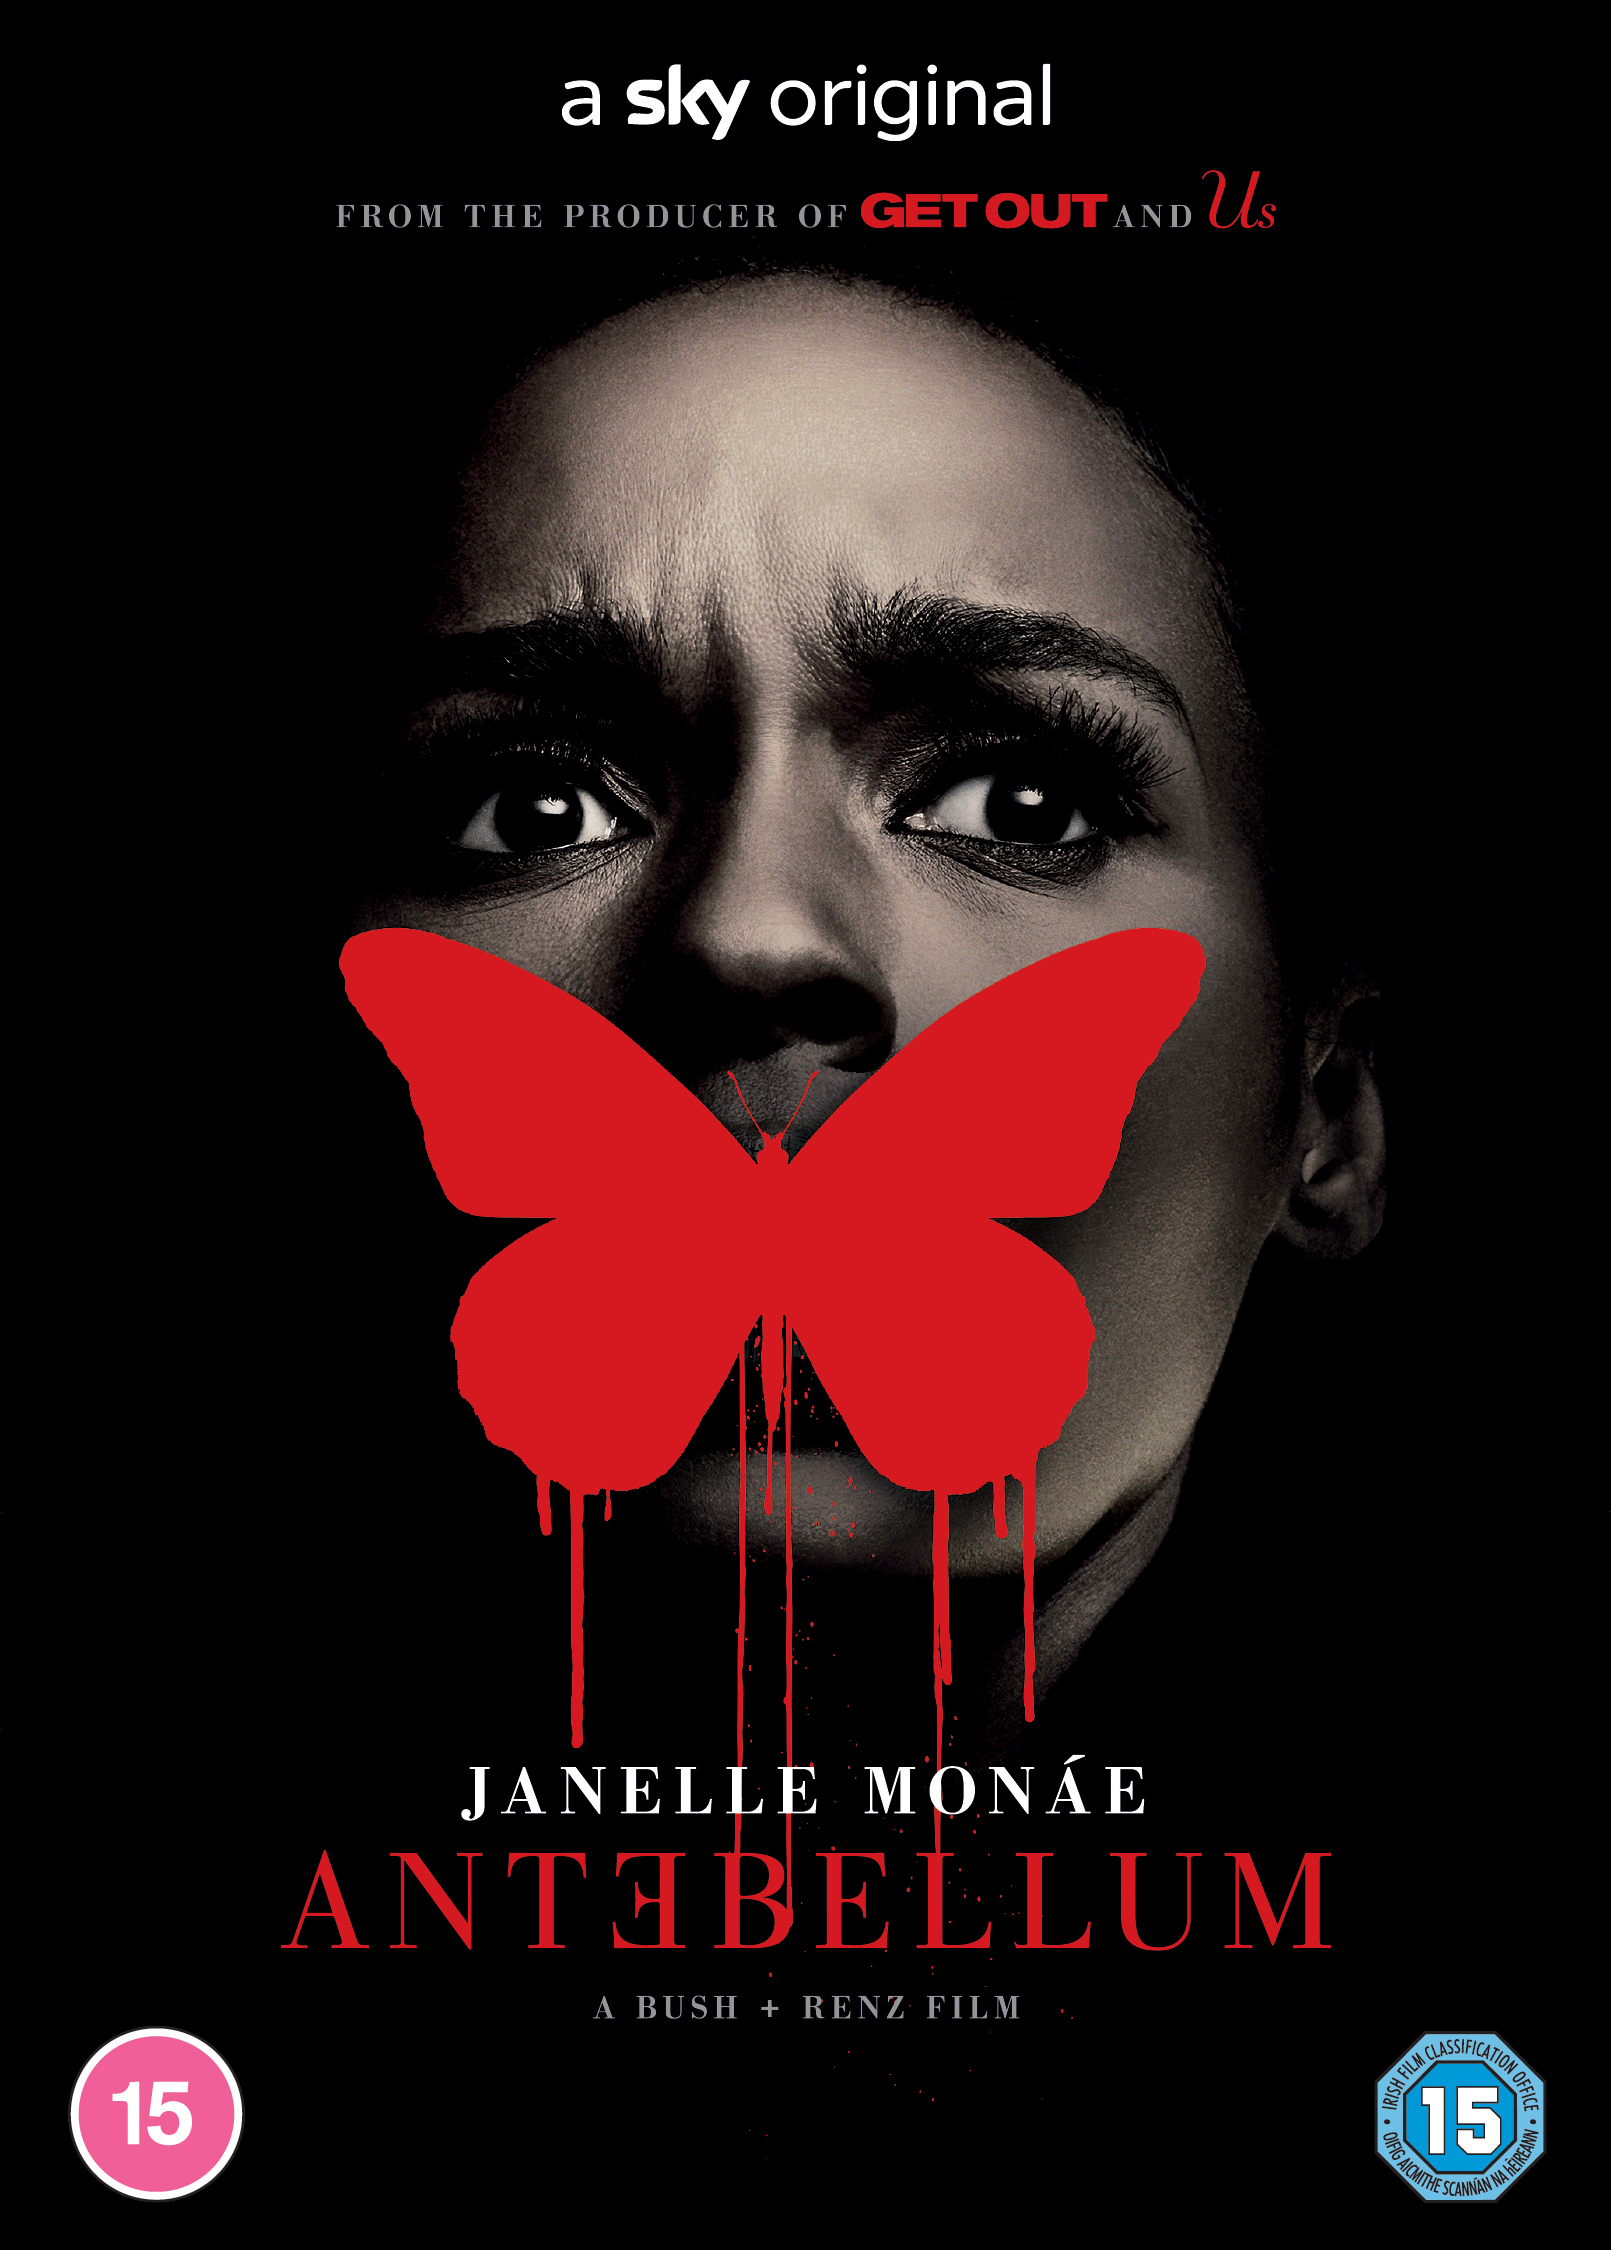 ANTEBELLUM Available Now on Digital Download, Blu-ray and DVD from Lionsgate UK